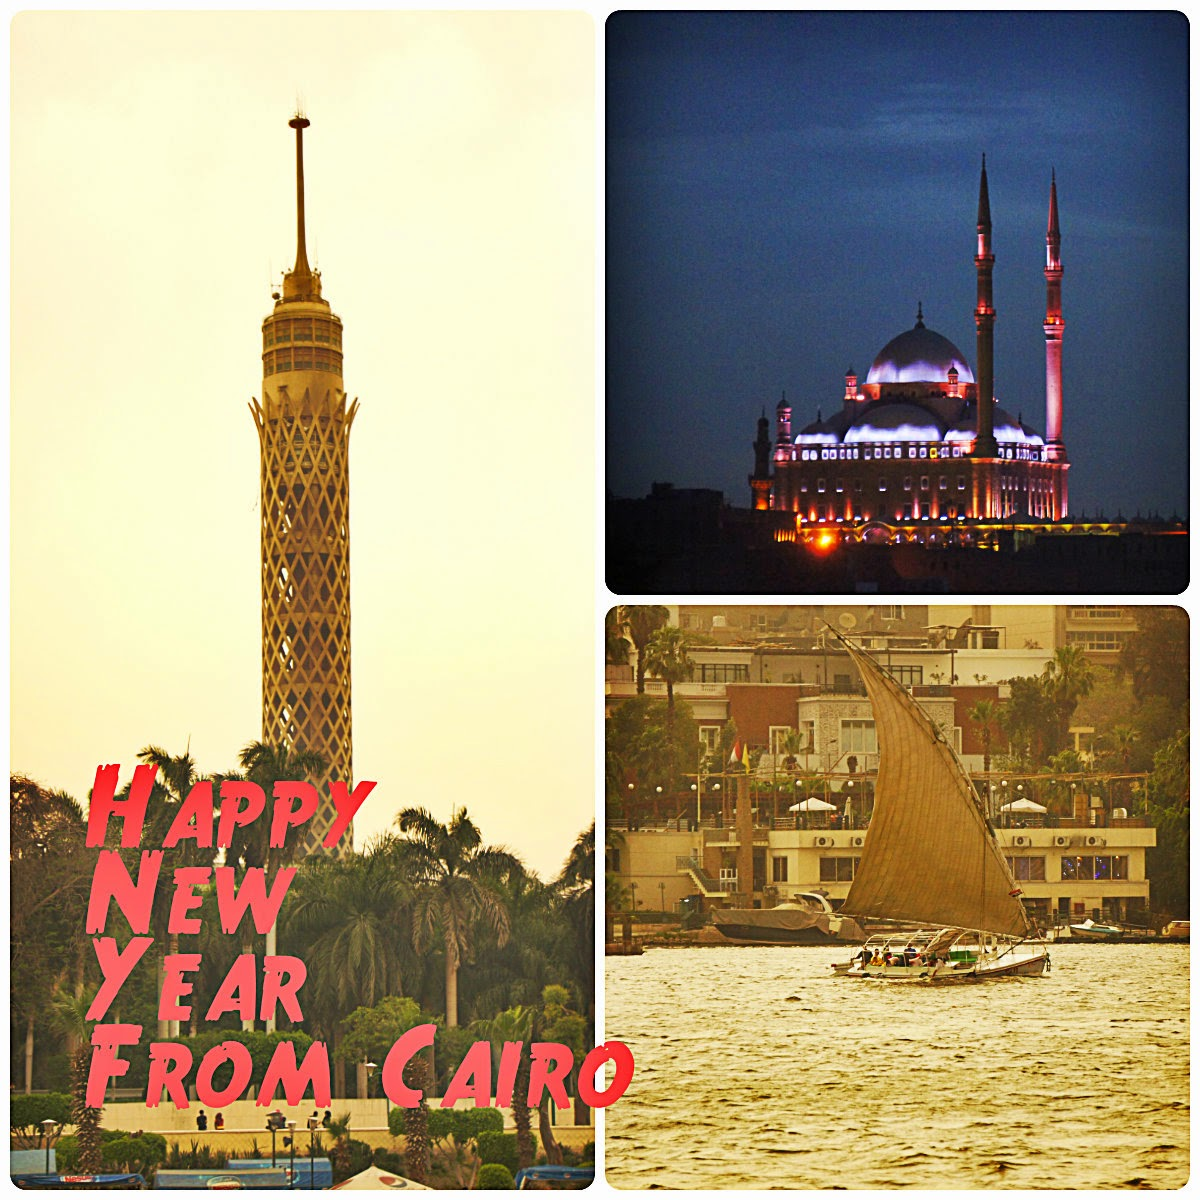 Egyptian Chronicles: Happy New Year 2015